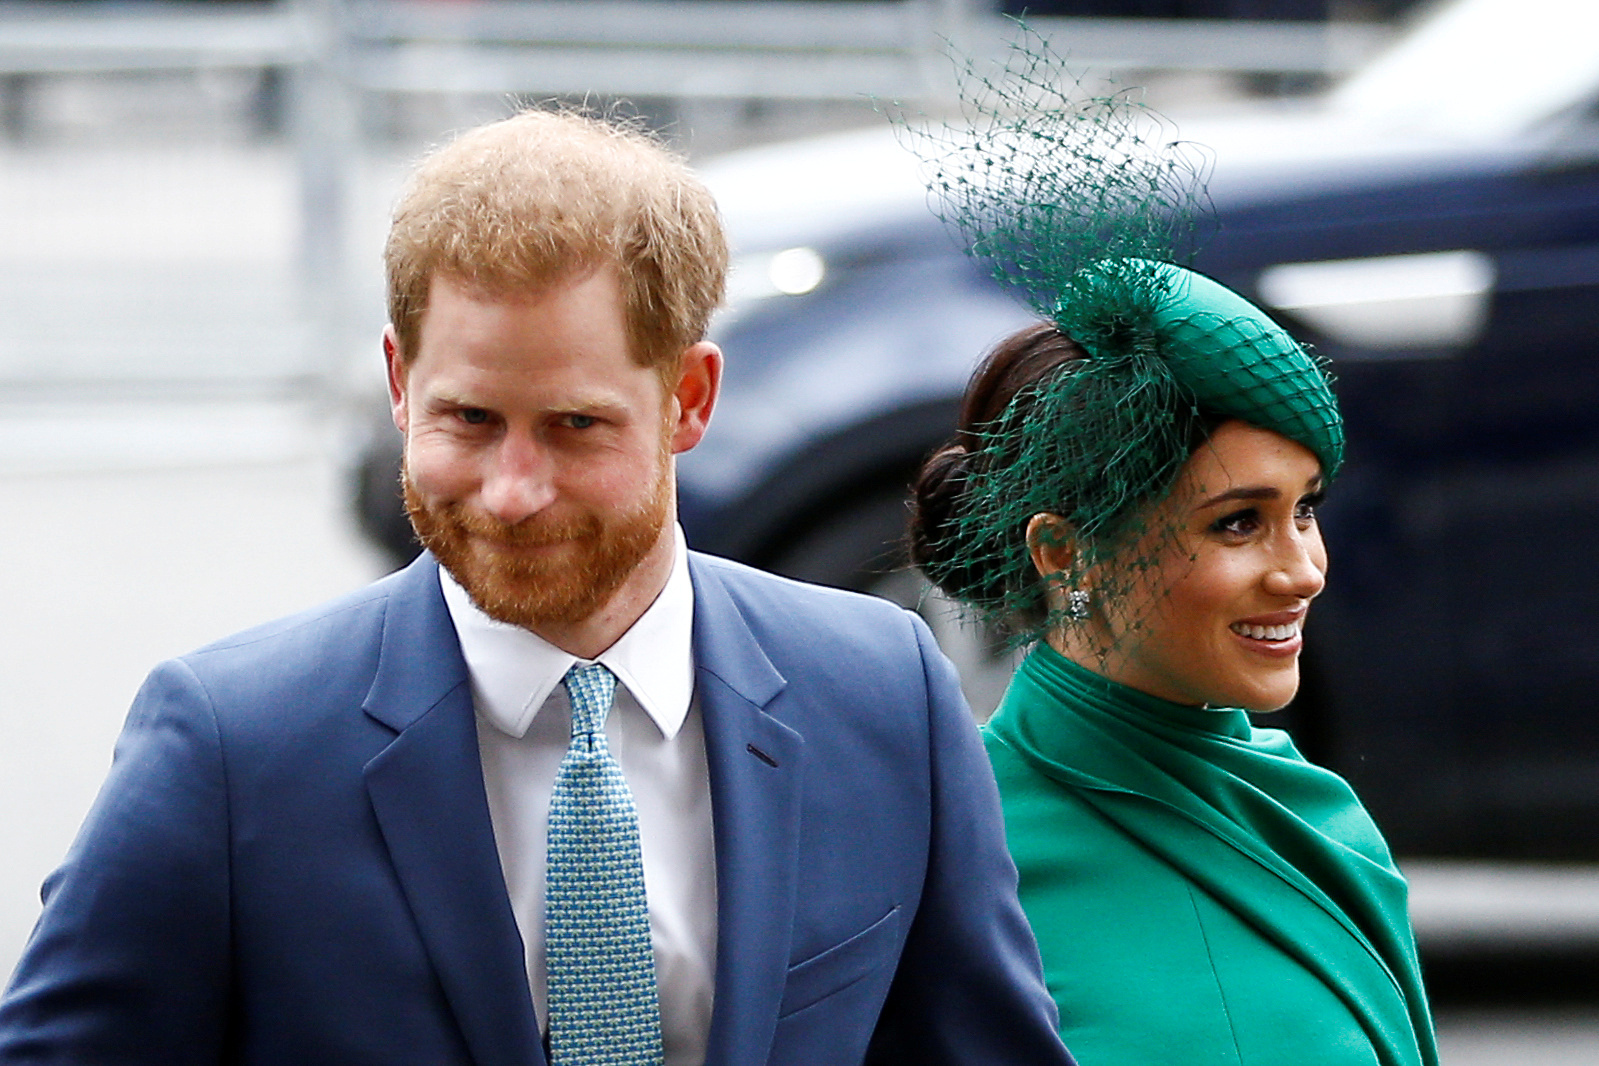 Uk S Prince Harry Wife Meghan Bid Farewell To Royal Roles Voice Of America English